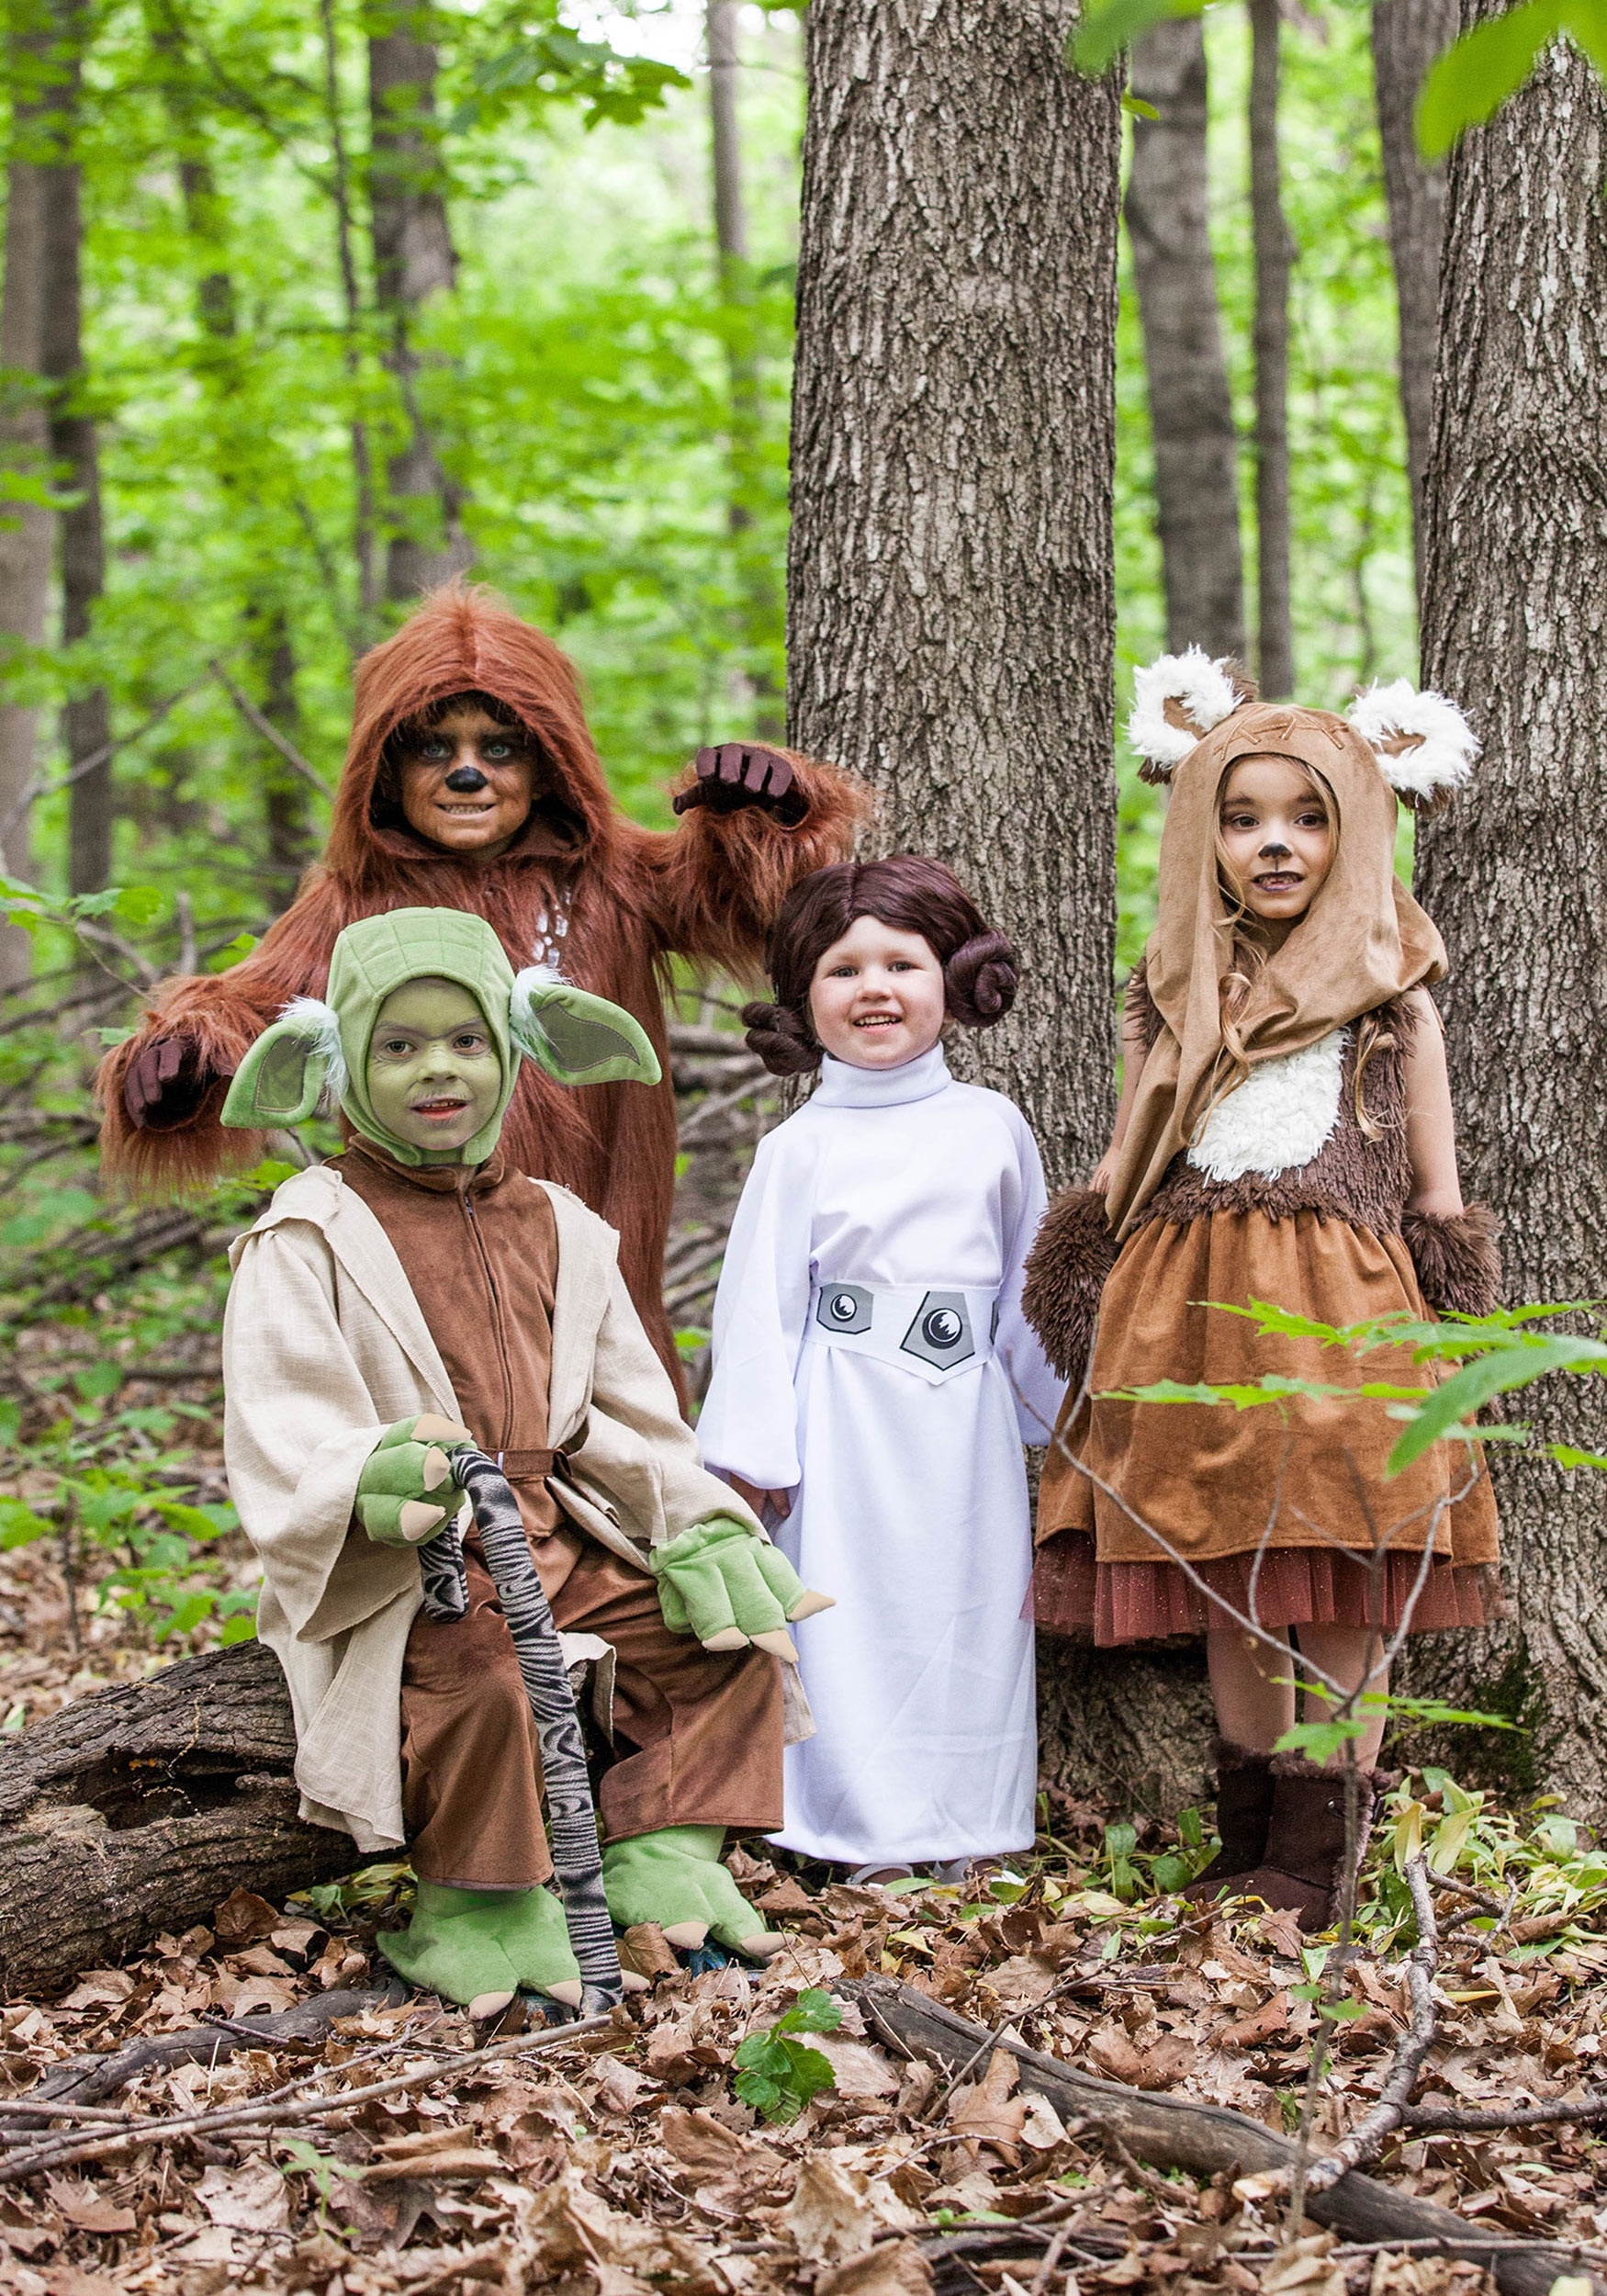 Kids Princess Leia Costume Jabba The Hutt And Princess Leia Costume